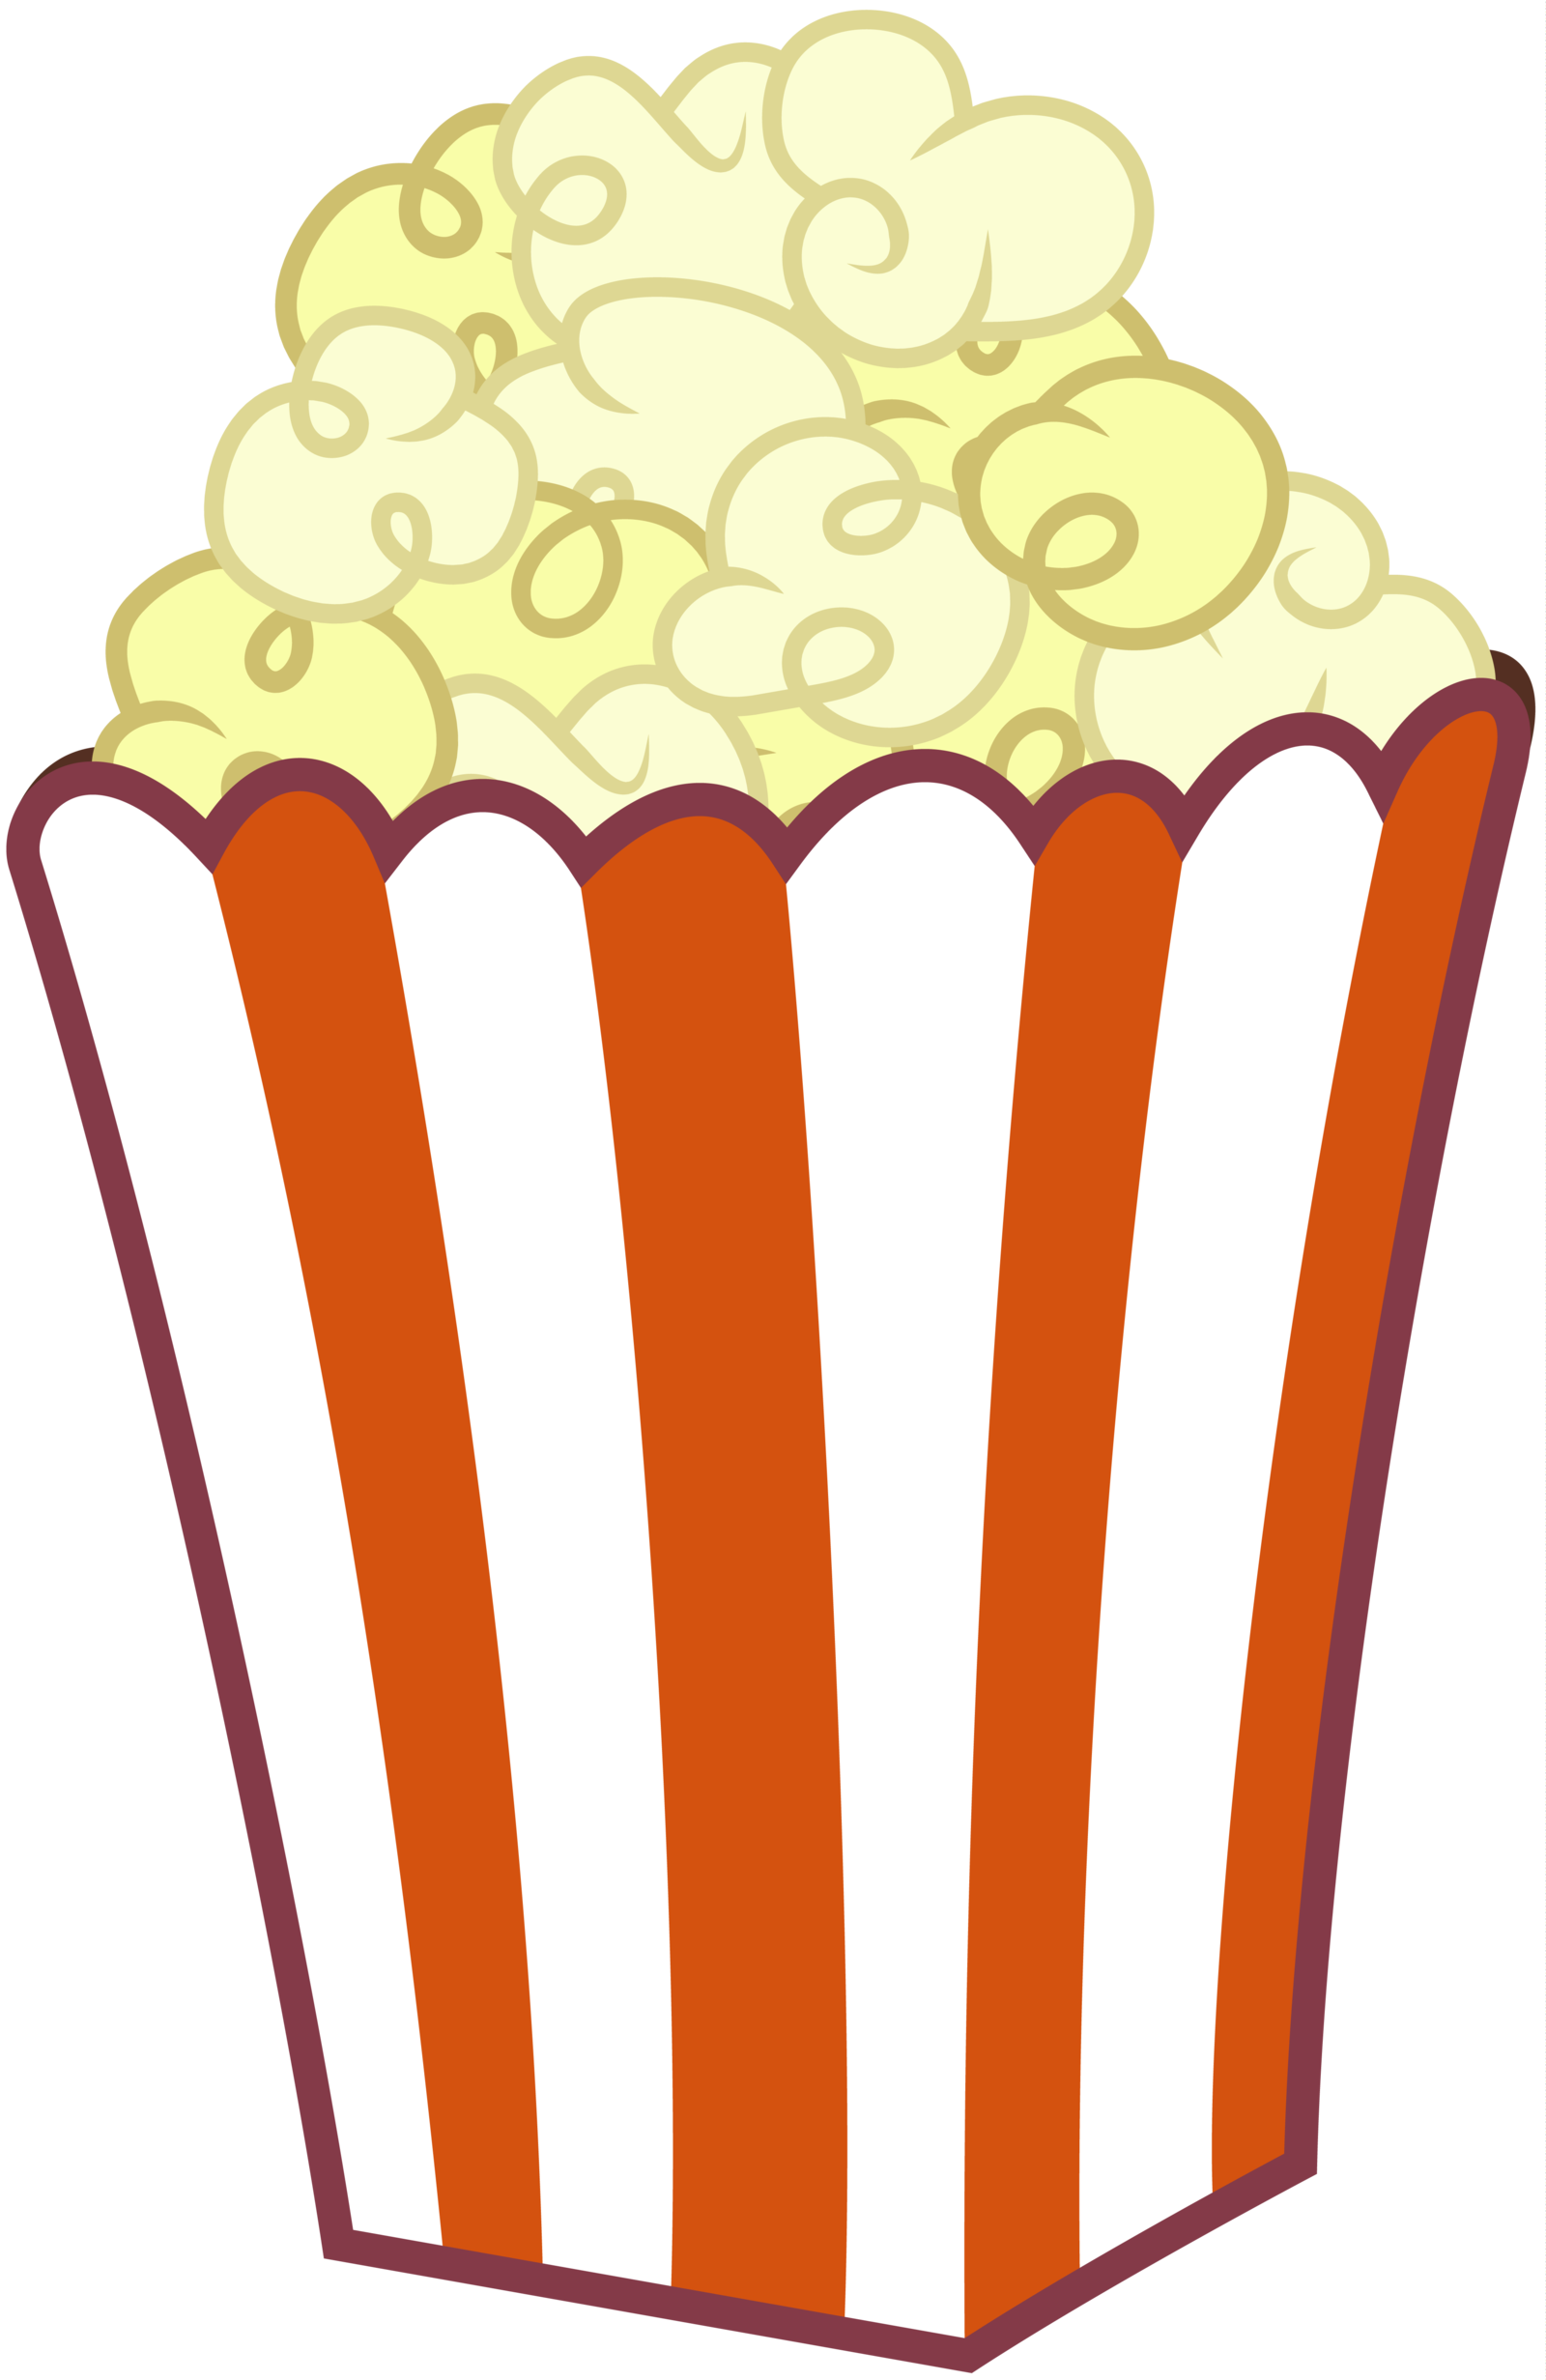 Image result for popcorn. Festival clipart concert fan